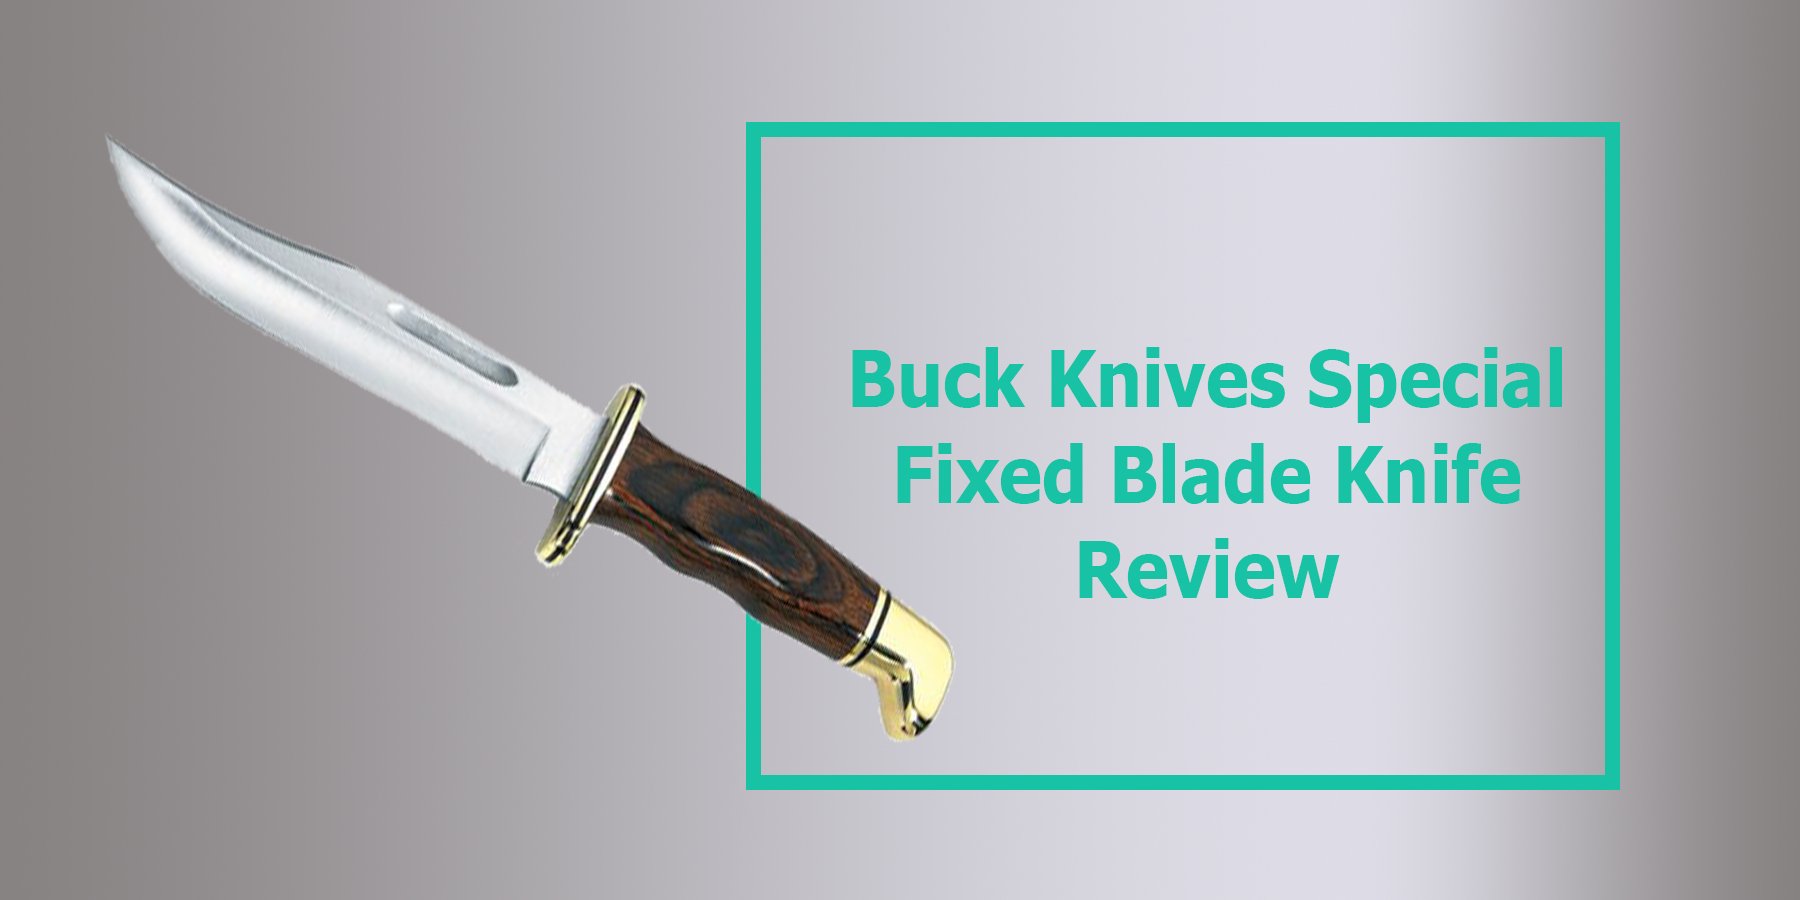 Buck Knives Special Fixed Blade Knife Review